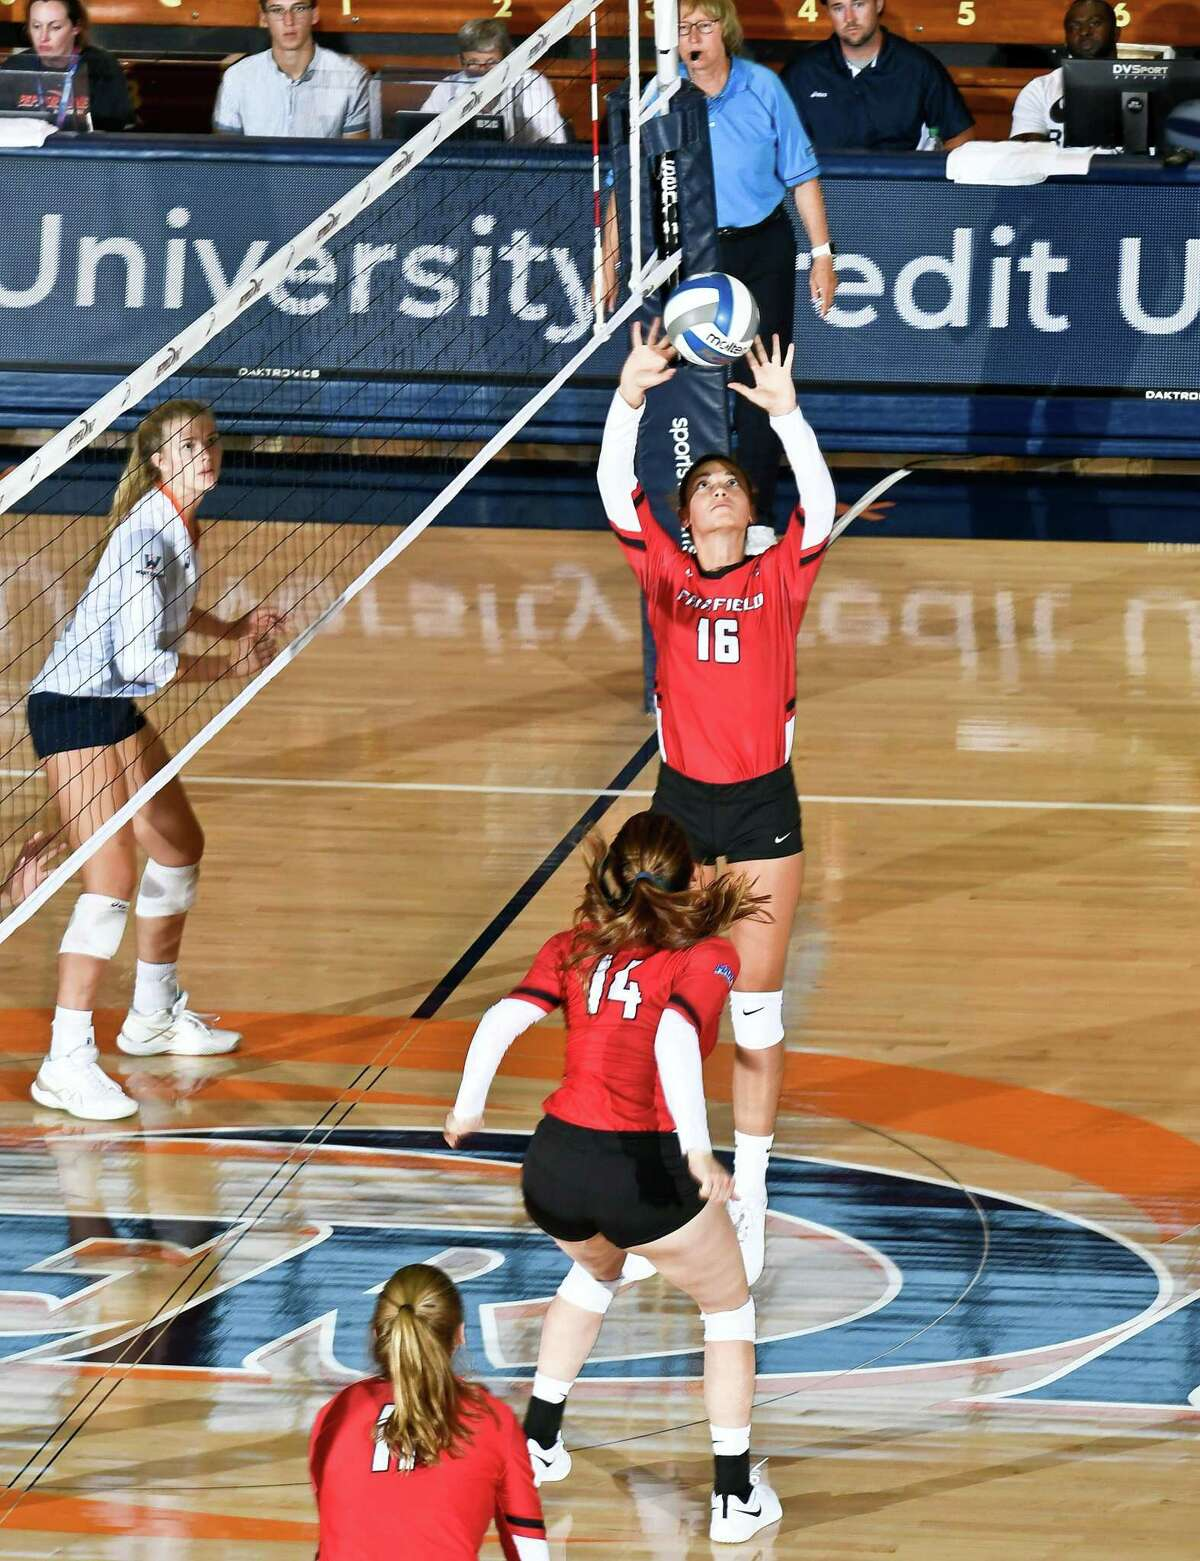 Manuela Nicolini (16), Kaylie Butts (14) and Laura Seeger (11) led Fairfield to MAAC volleyball title and spot in NCAA tournament